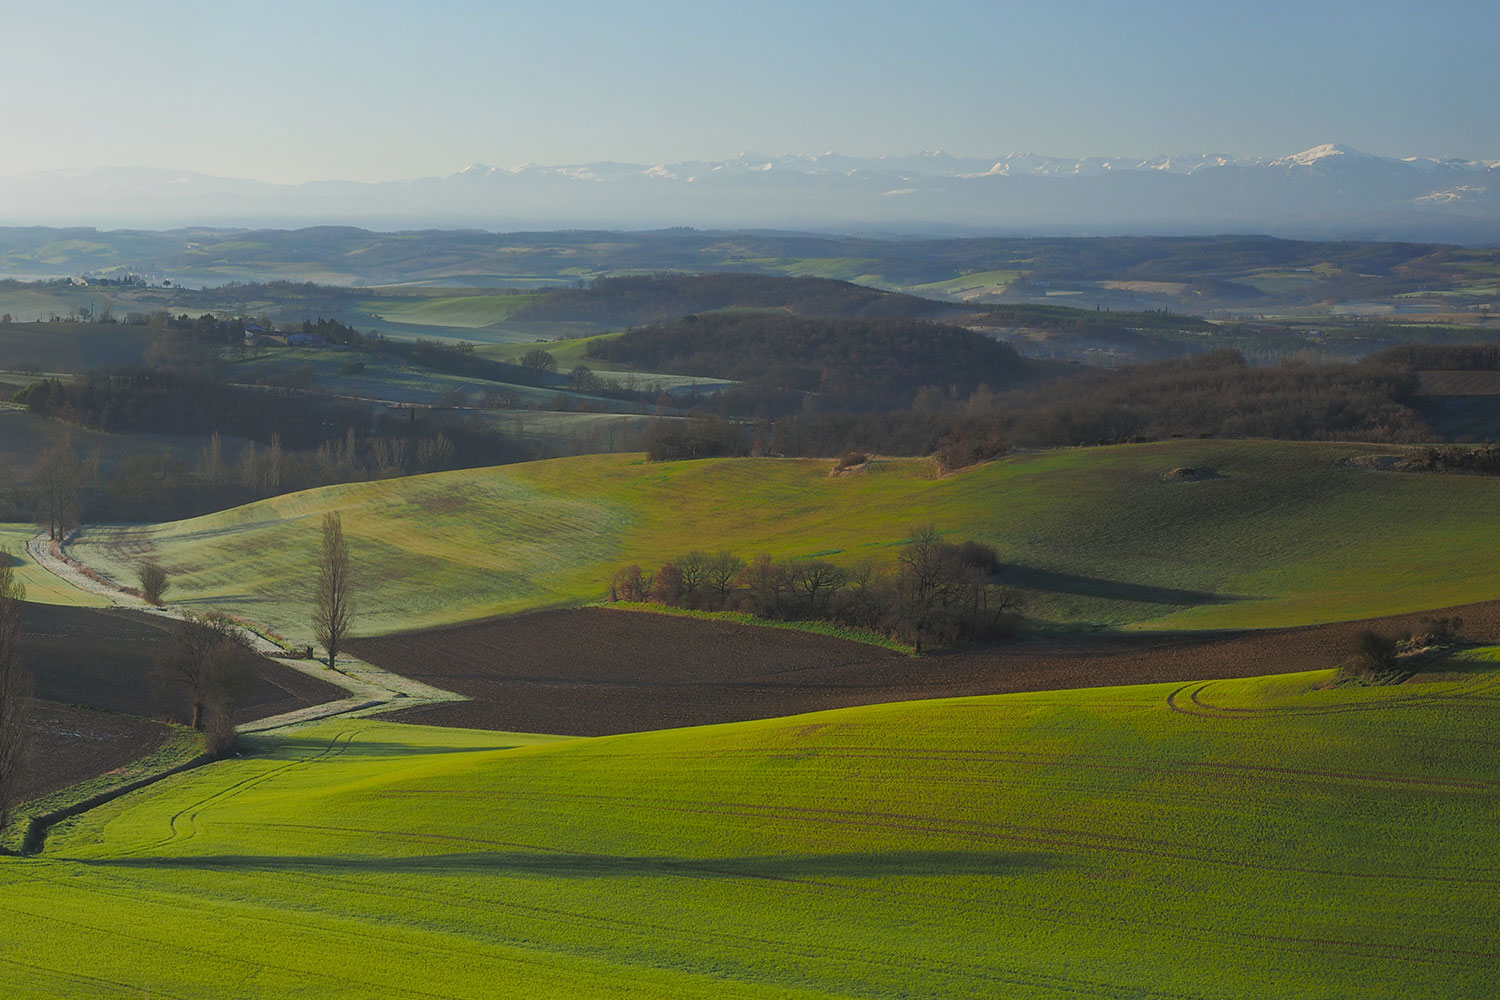 les collines du Lauragais / Rolling hills of the Lauragais